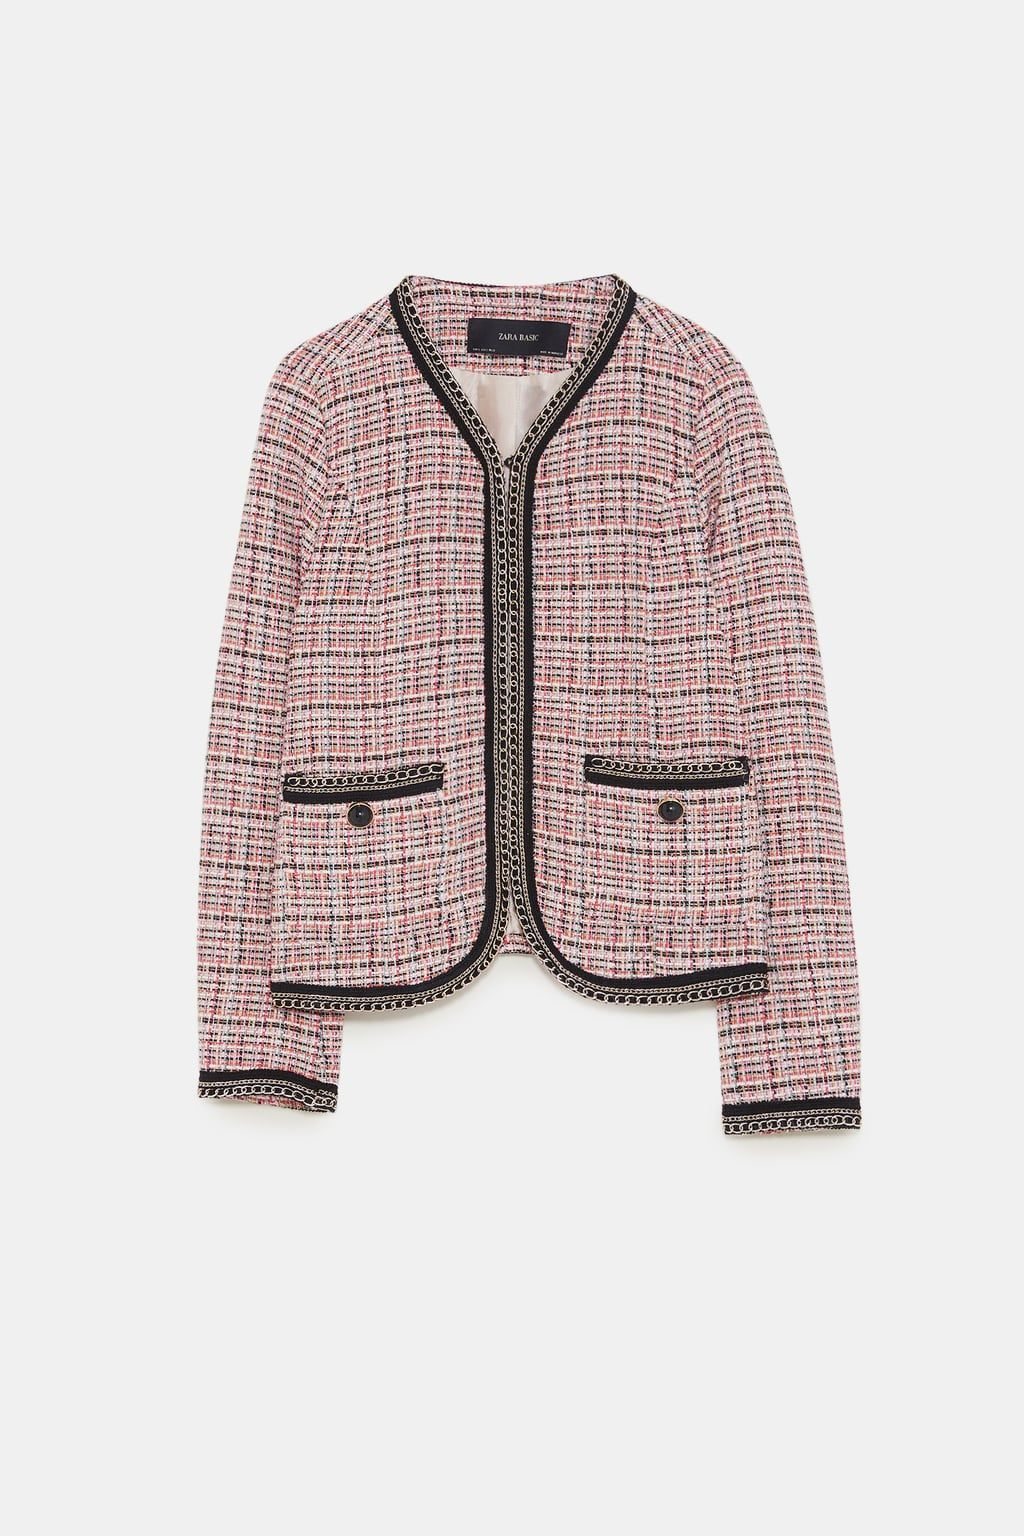 9a44ad08 Image 8 of TWEED BLAZER WITH CHAINS from Zara | Want | Tweed blazer ...